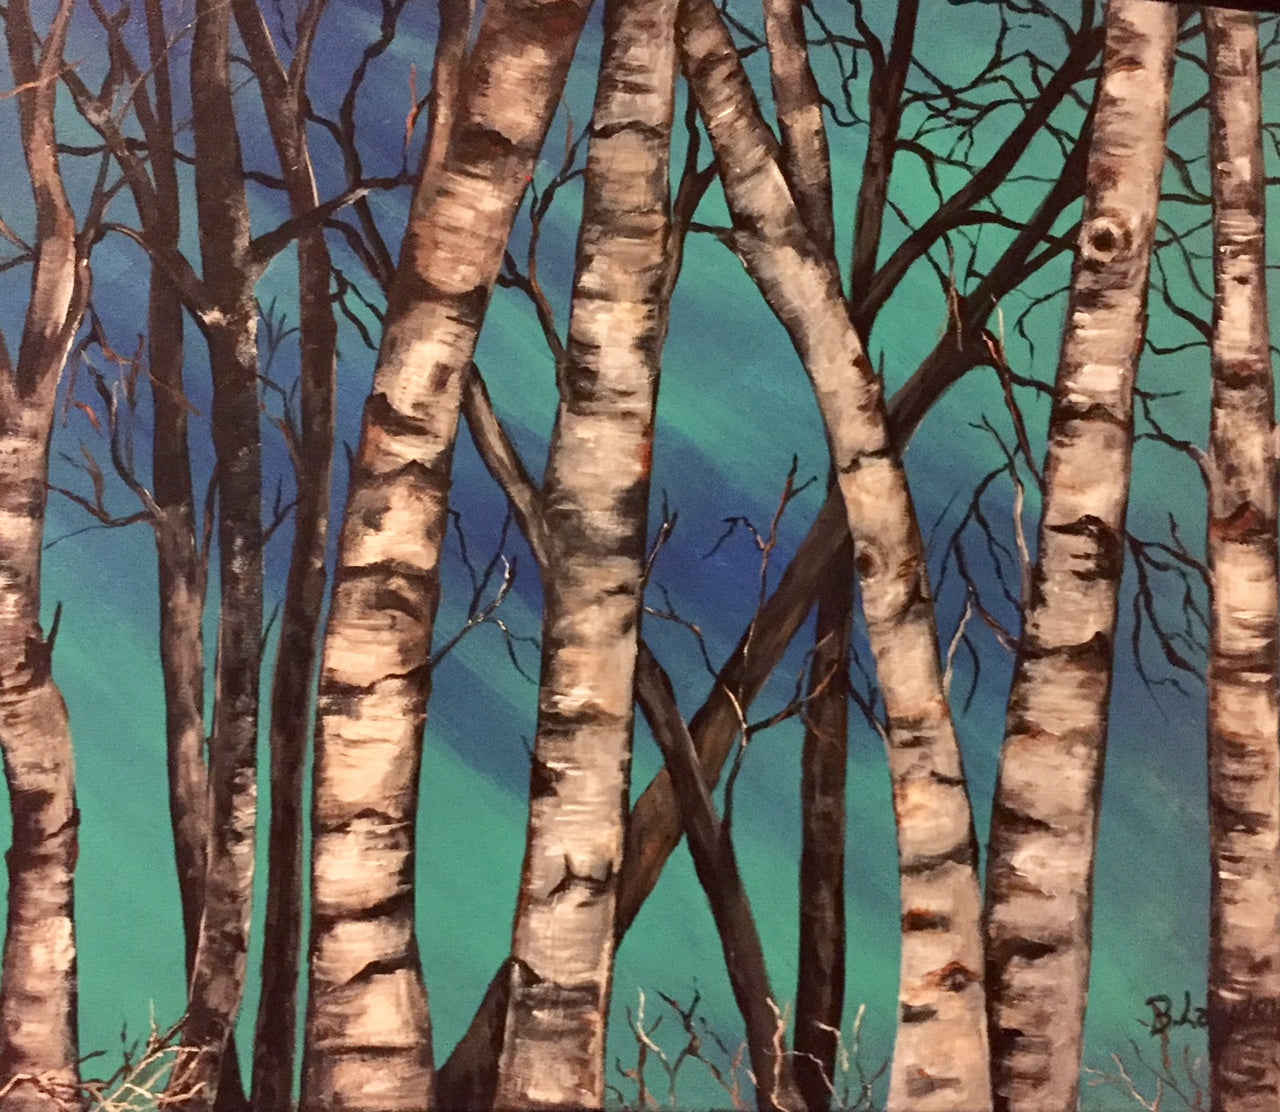 Surreal Birches